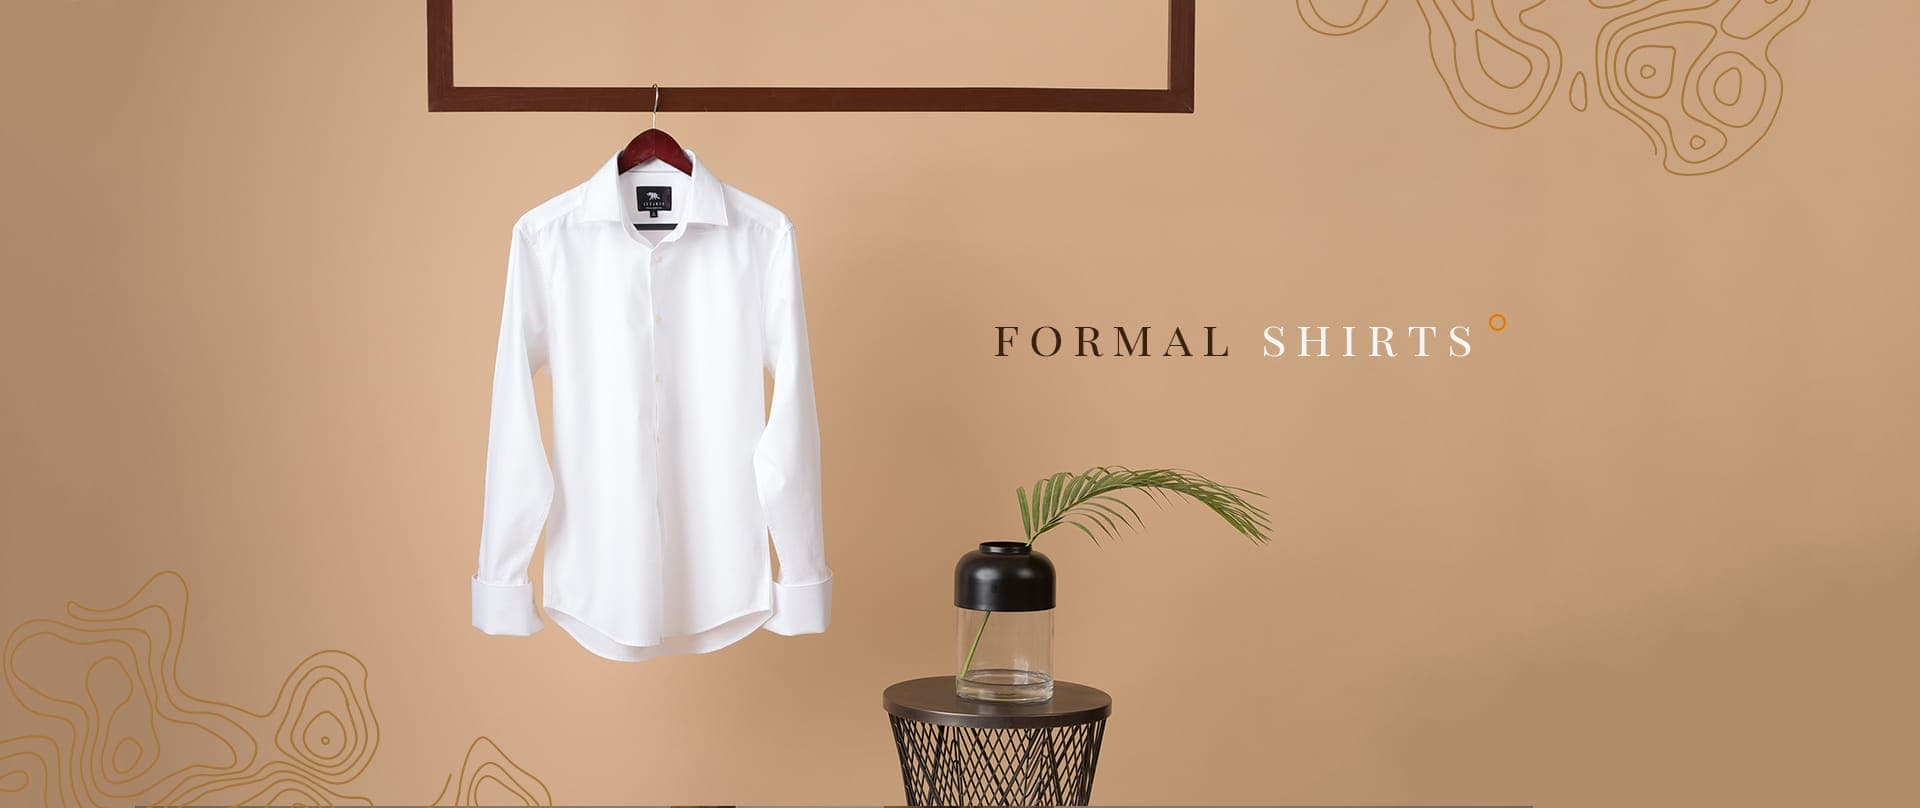 Branded Formal Shirts For Men's